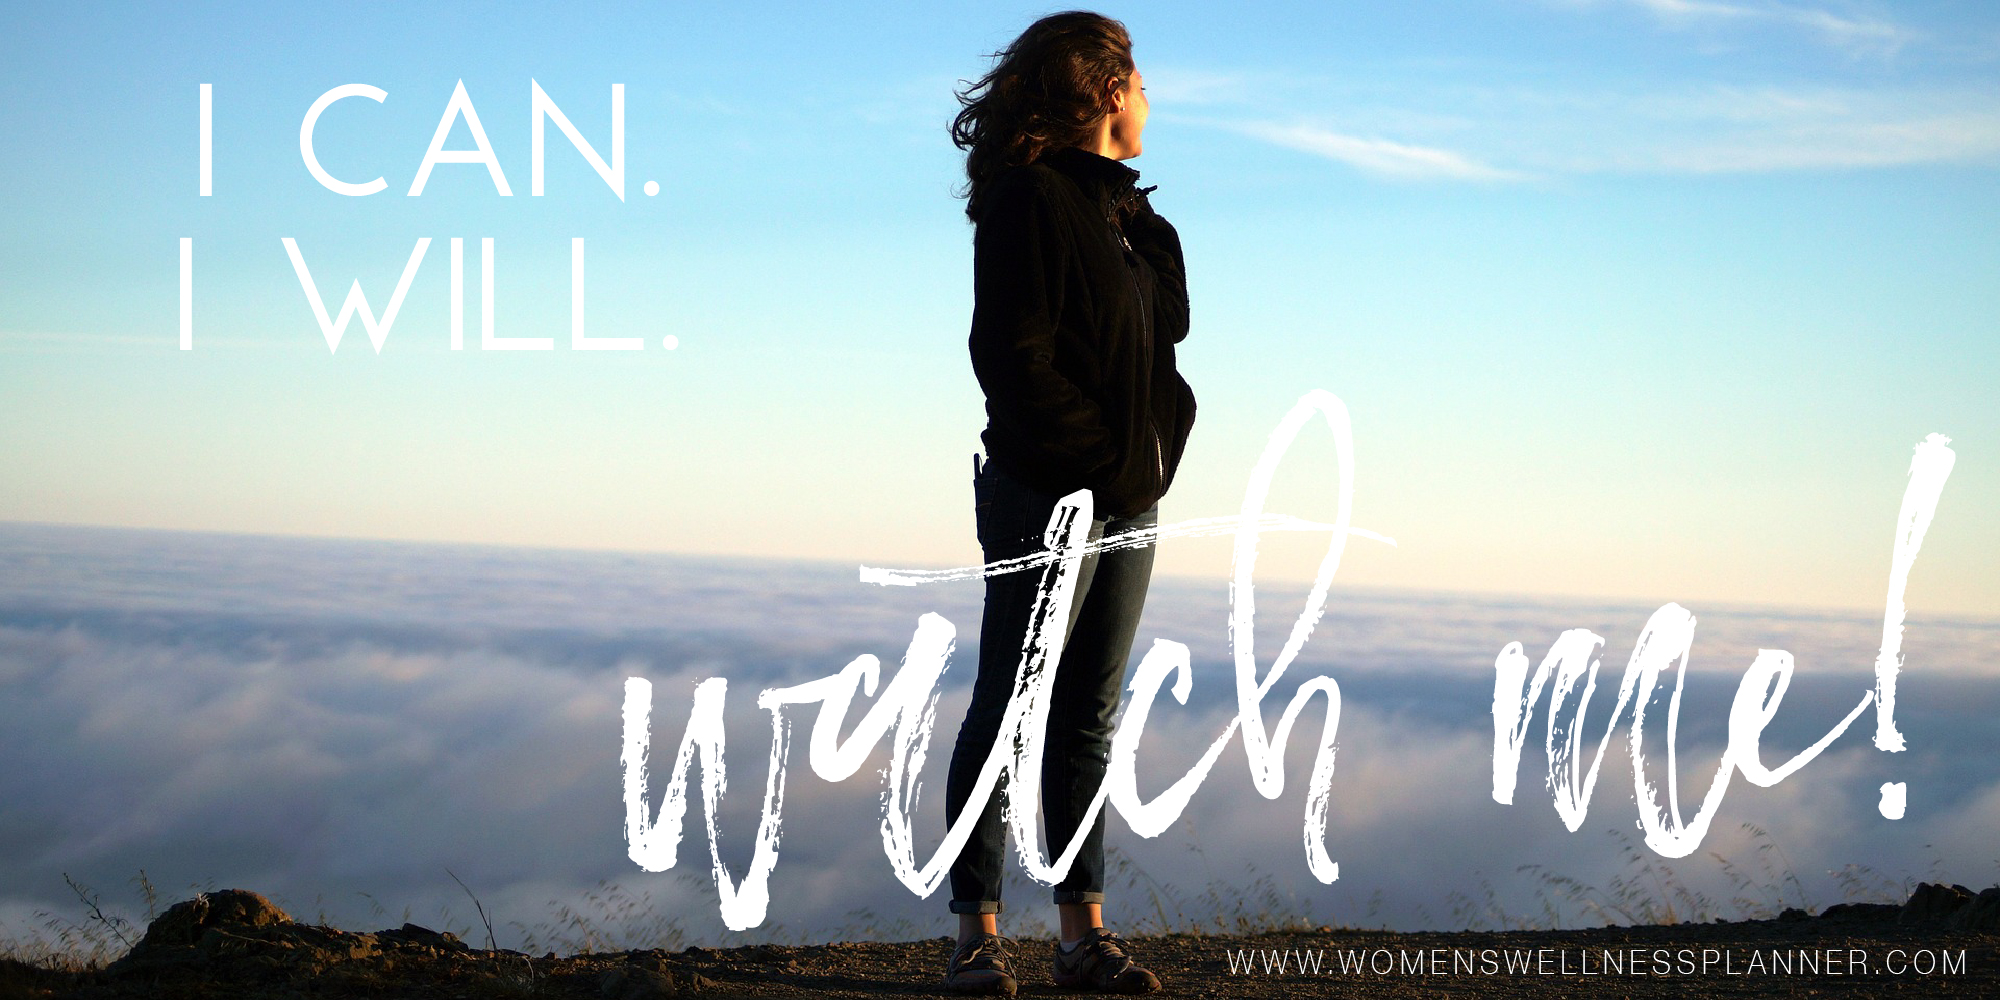 """""""I can. I will. Watch me!""""  